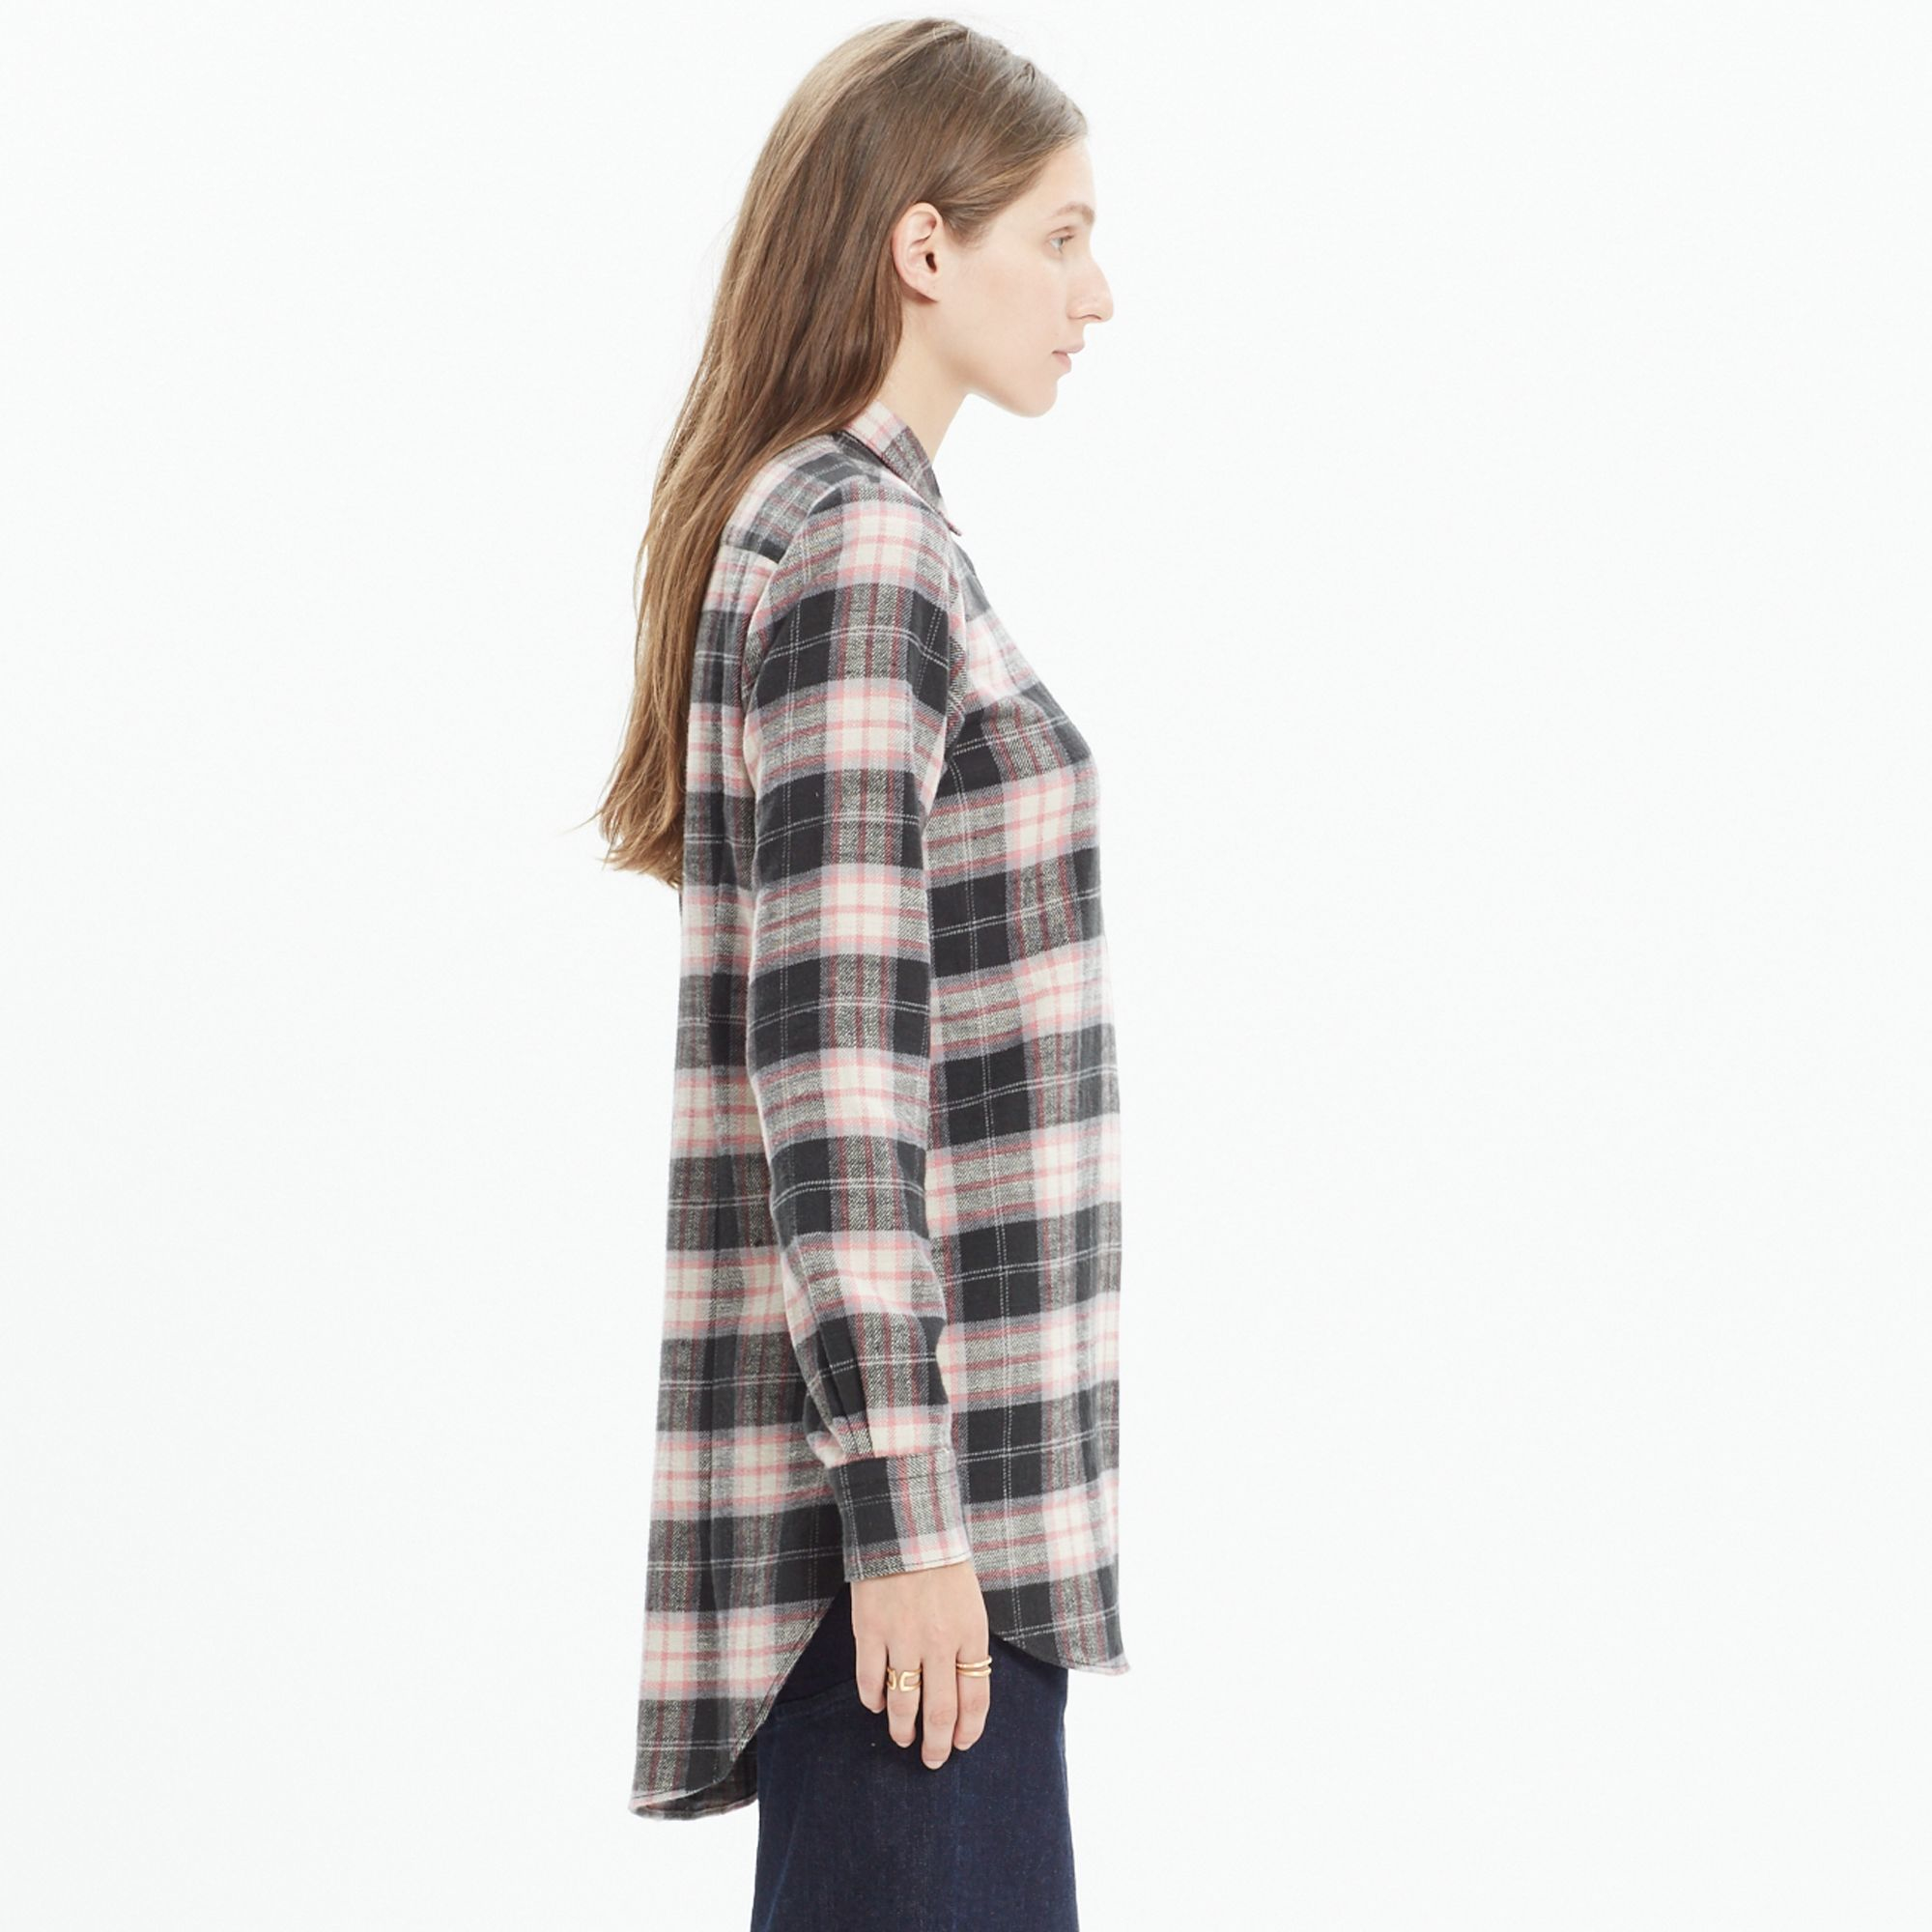 Madewell Rivet Thread Flannel Slim Tunic Shirt In